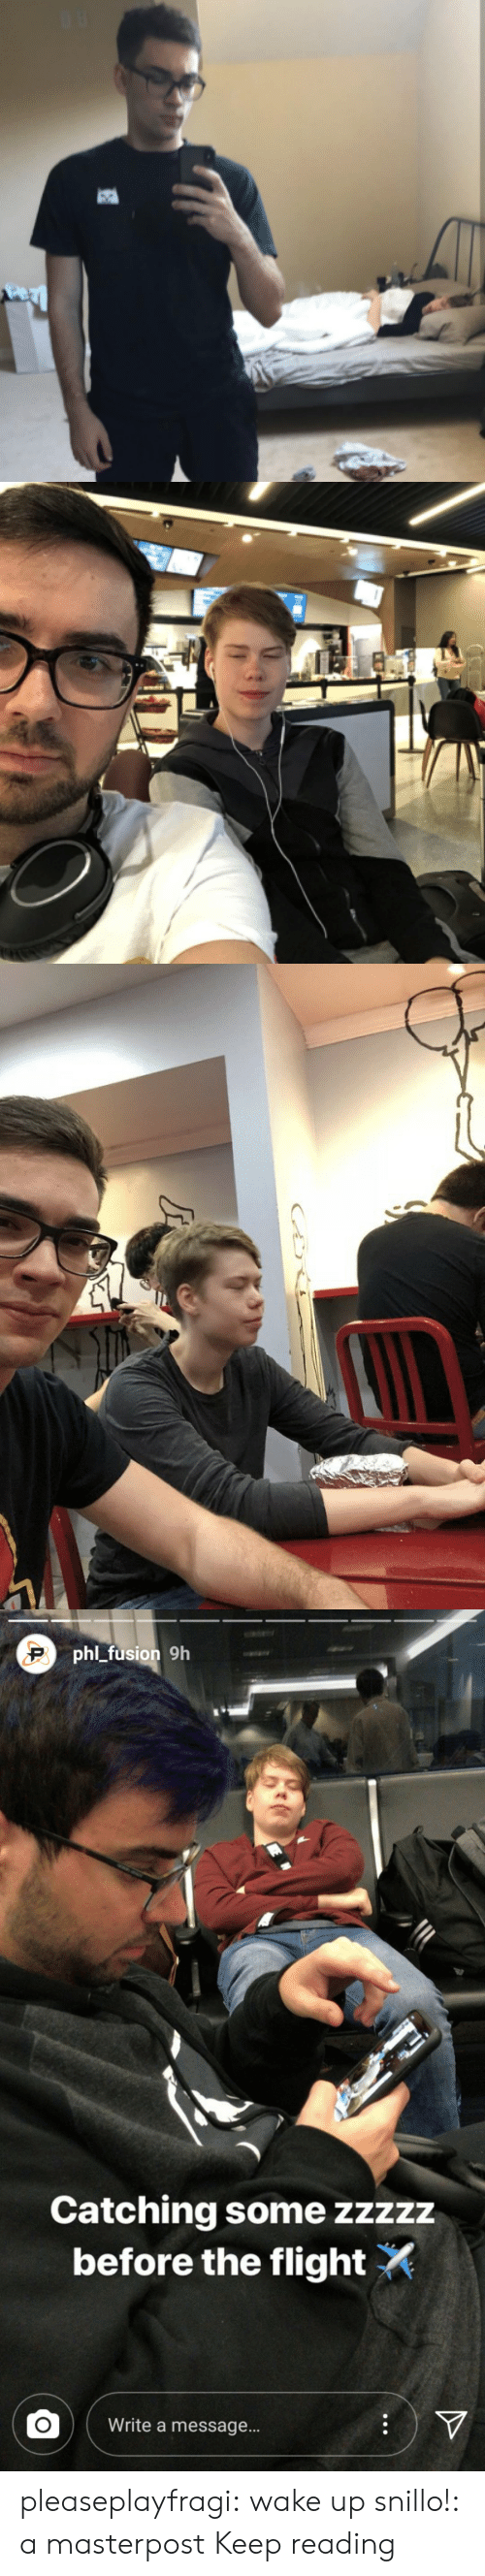 Tumblr, Blog, and Flight: phlL fusion 9h  Catching some zzzzz  before the flight  Write a message... pleaseplayfragi:  wake up snillo!: a masterpost Keep reading